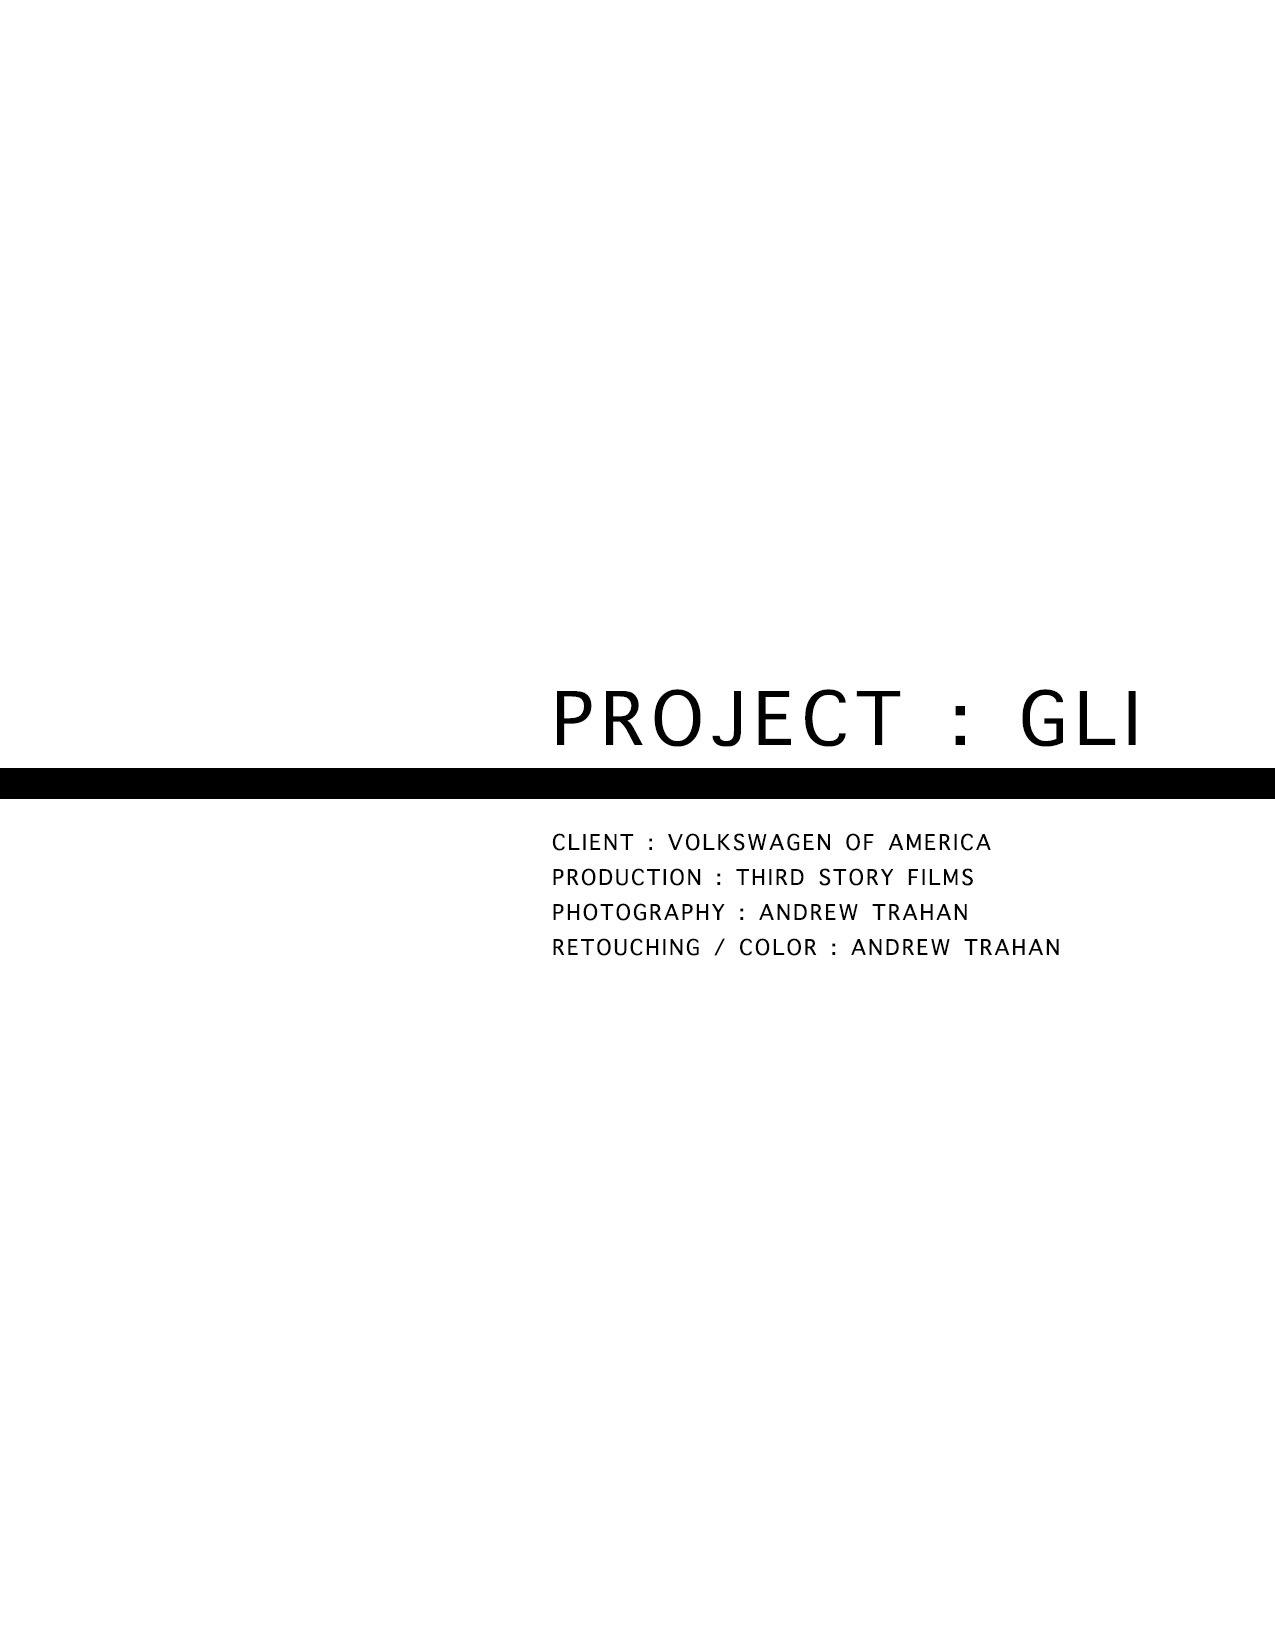 PROJECT---OPENER-PAGEGLI